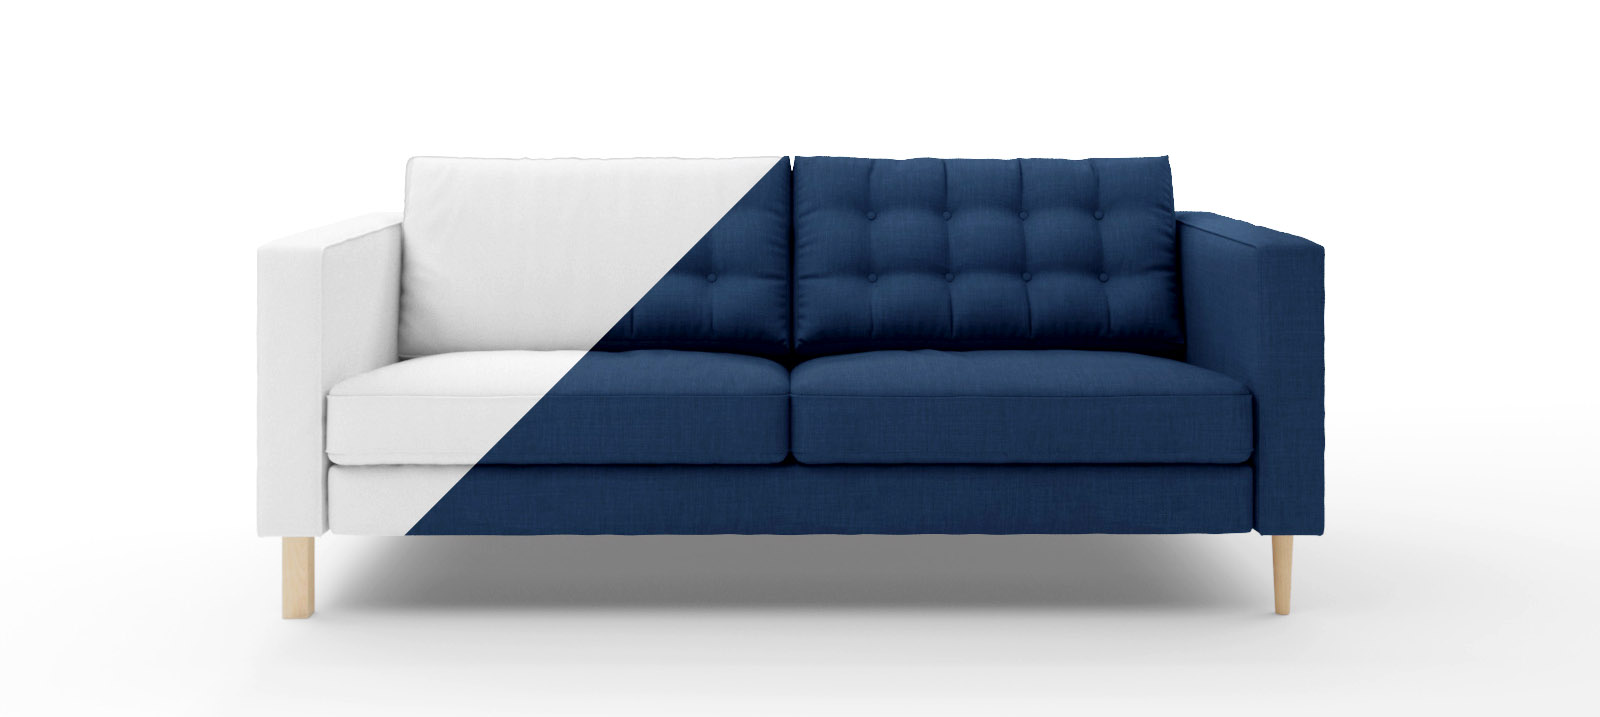 Ecksofa Norwich Slipcovers For Any Sofa Comfort Works